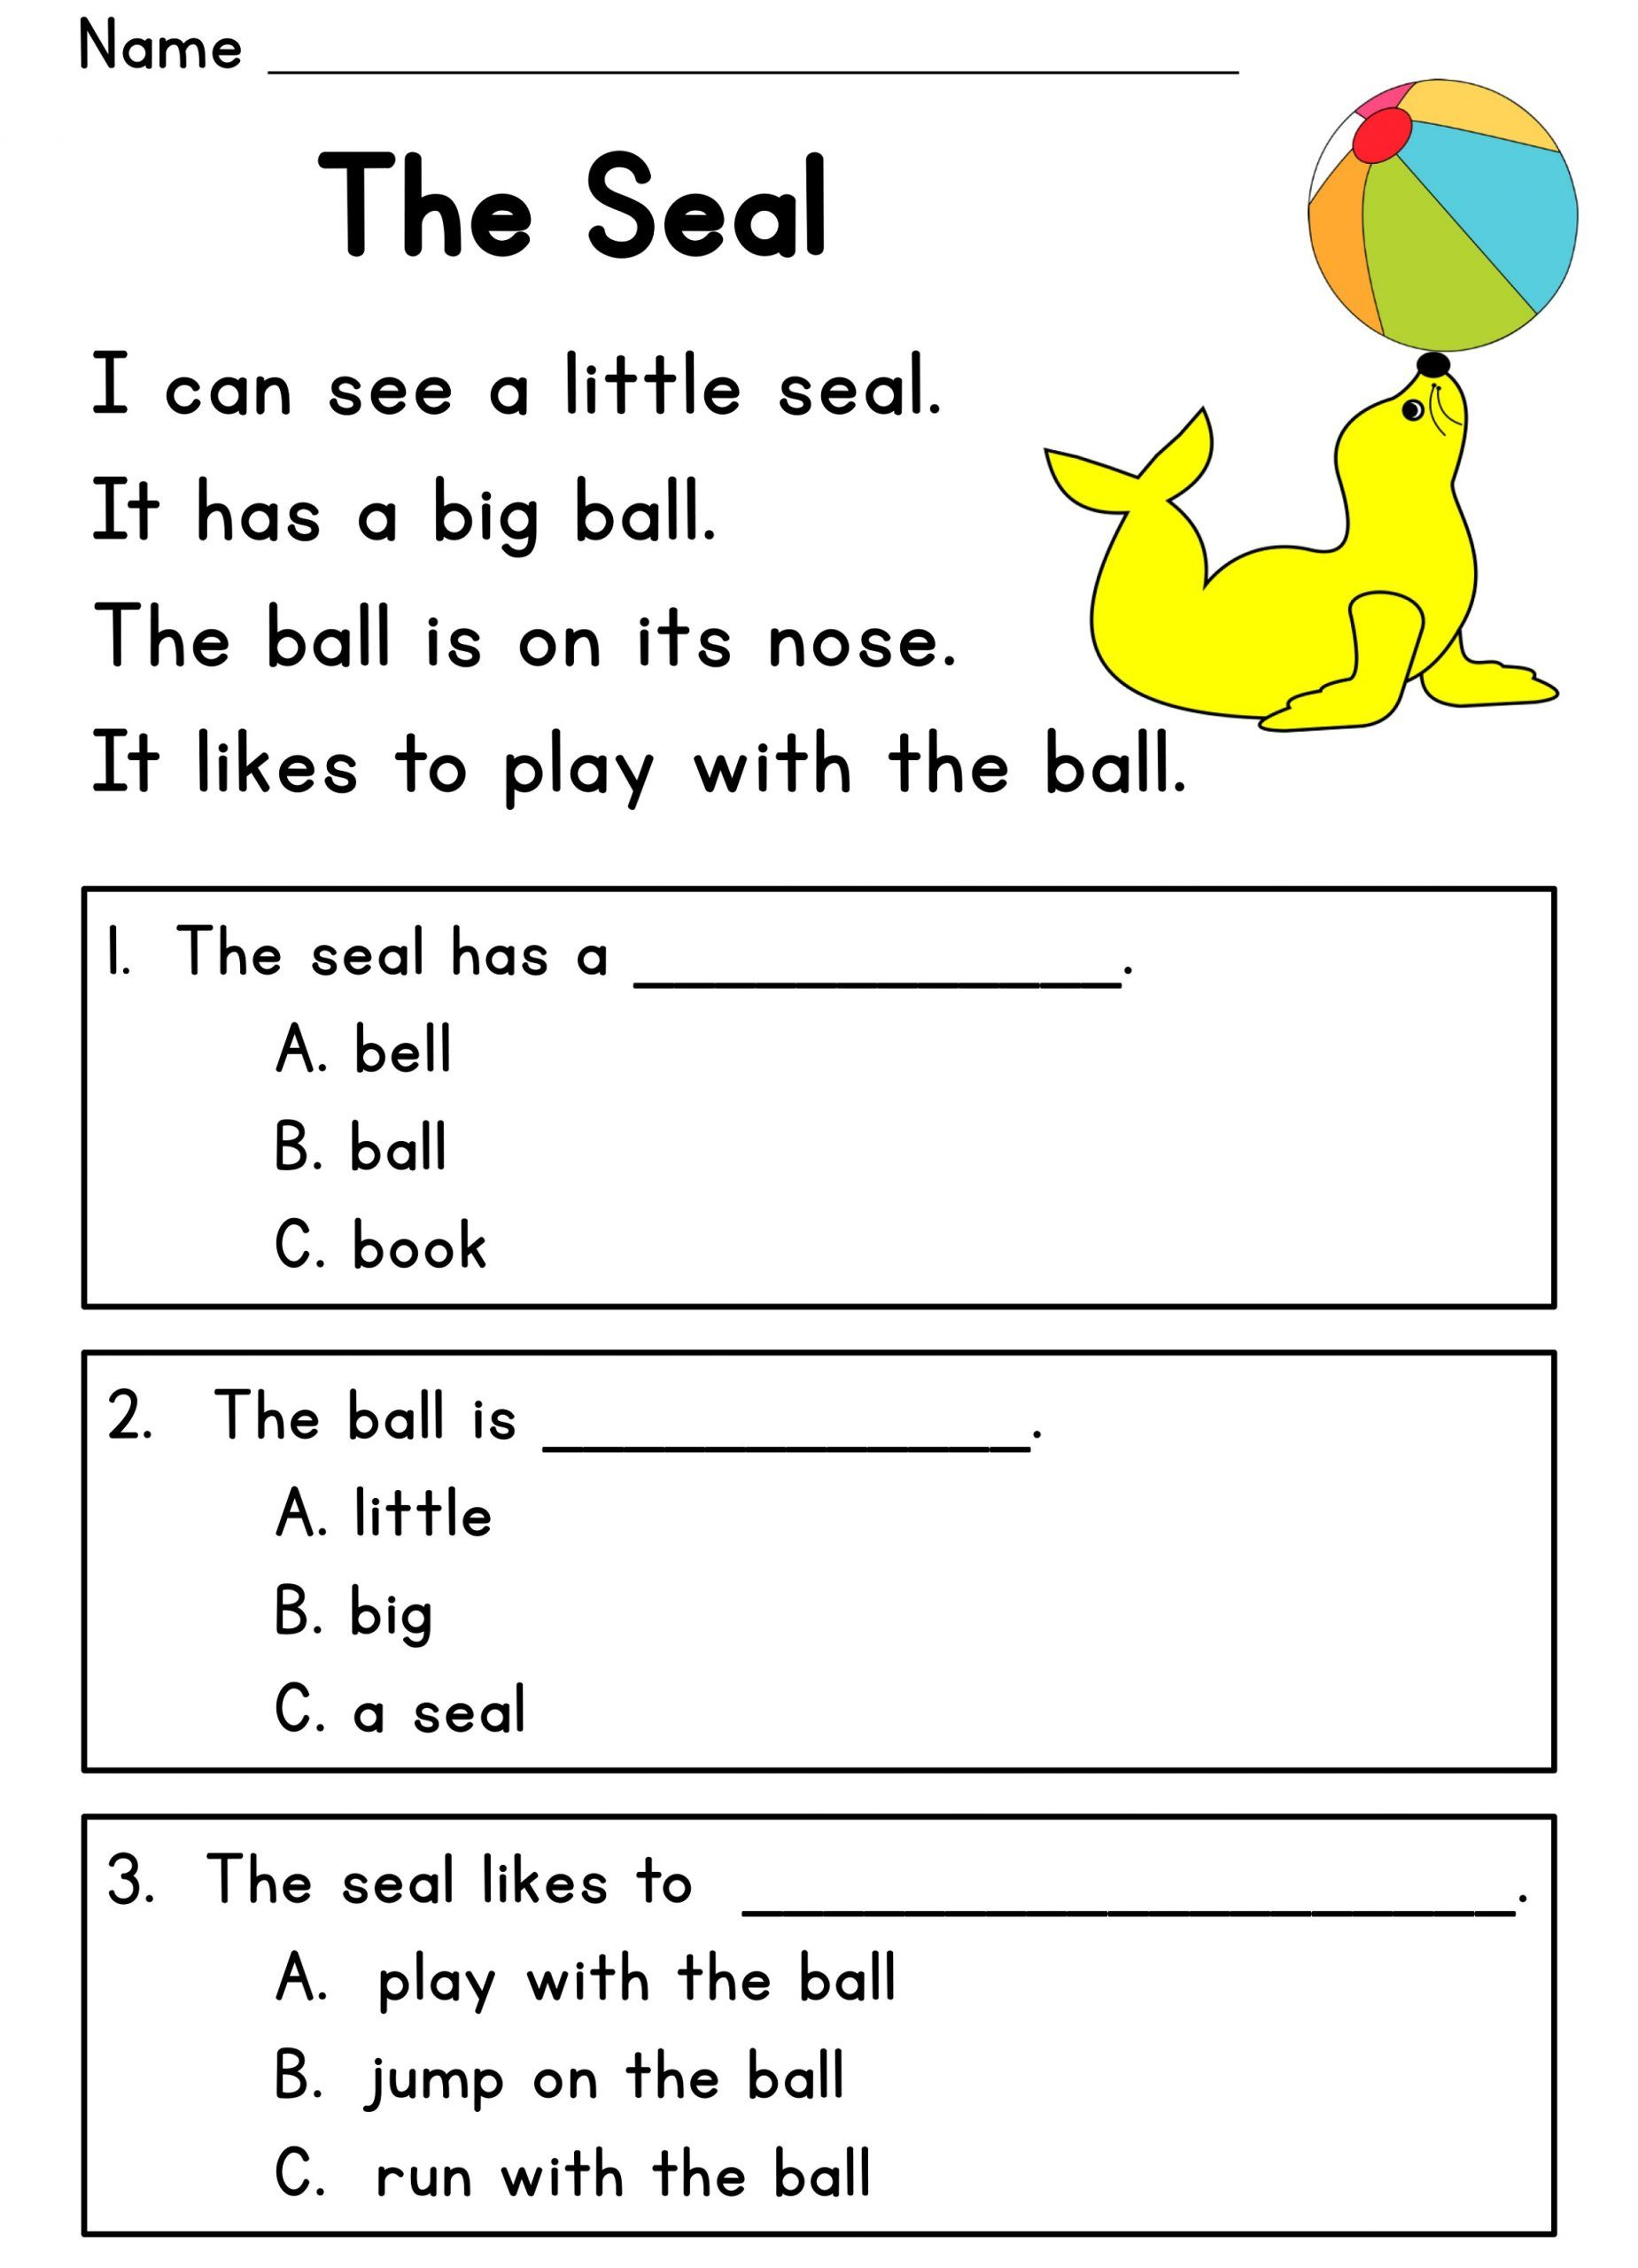 Free Printable Worksheets For 5 Year Olds In